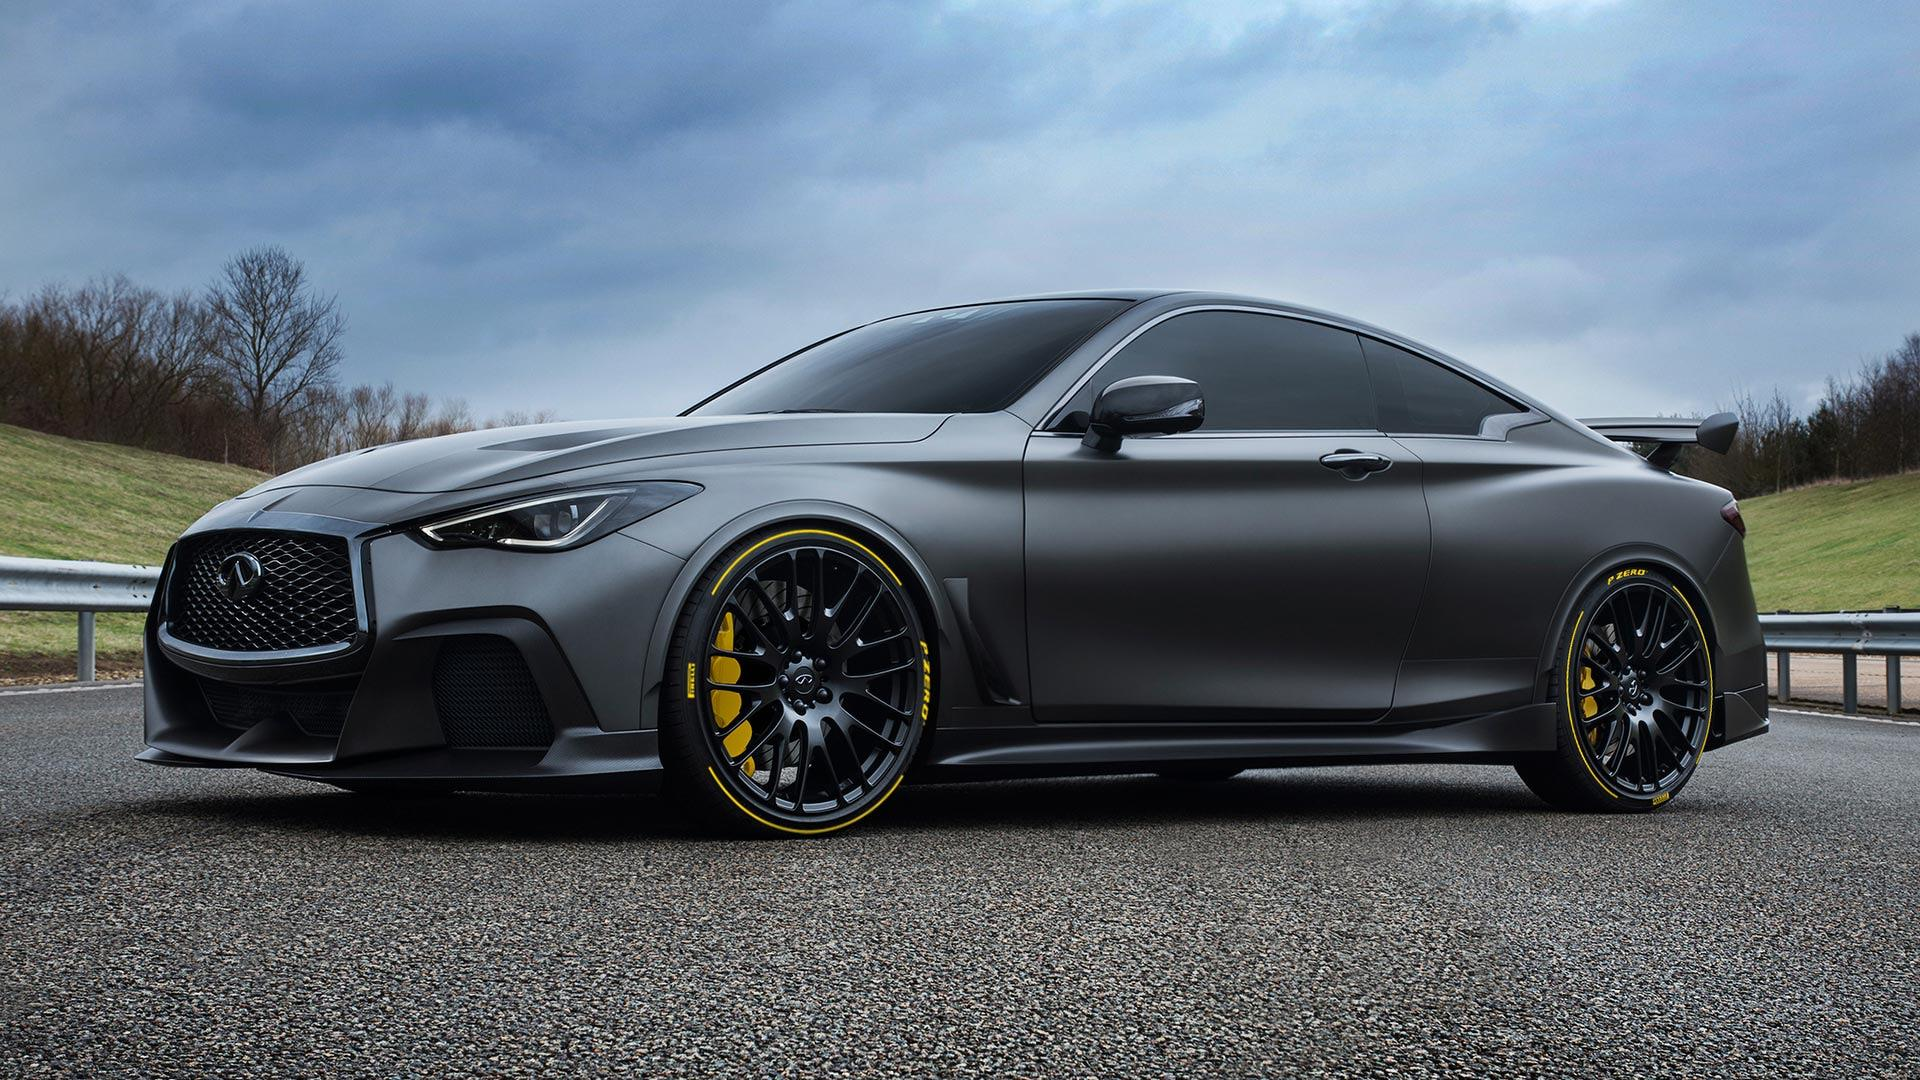 infiniti q60 project black s gets custom tires from pirelli. Black Bedroom Furniture Sets. Home Design Ideas